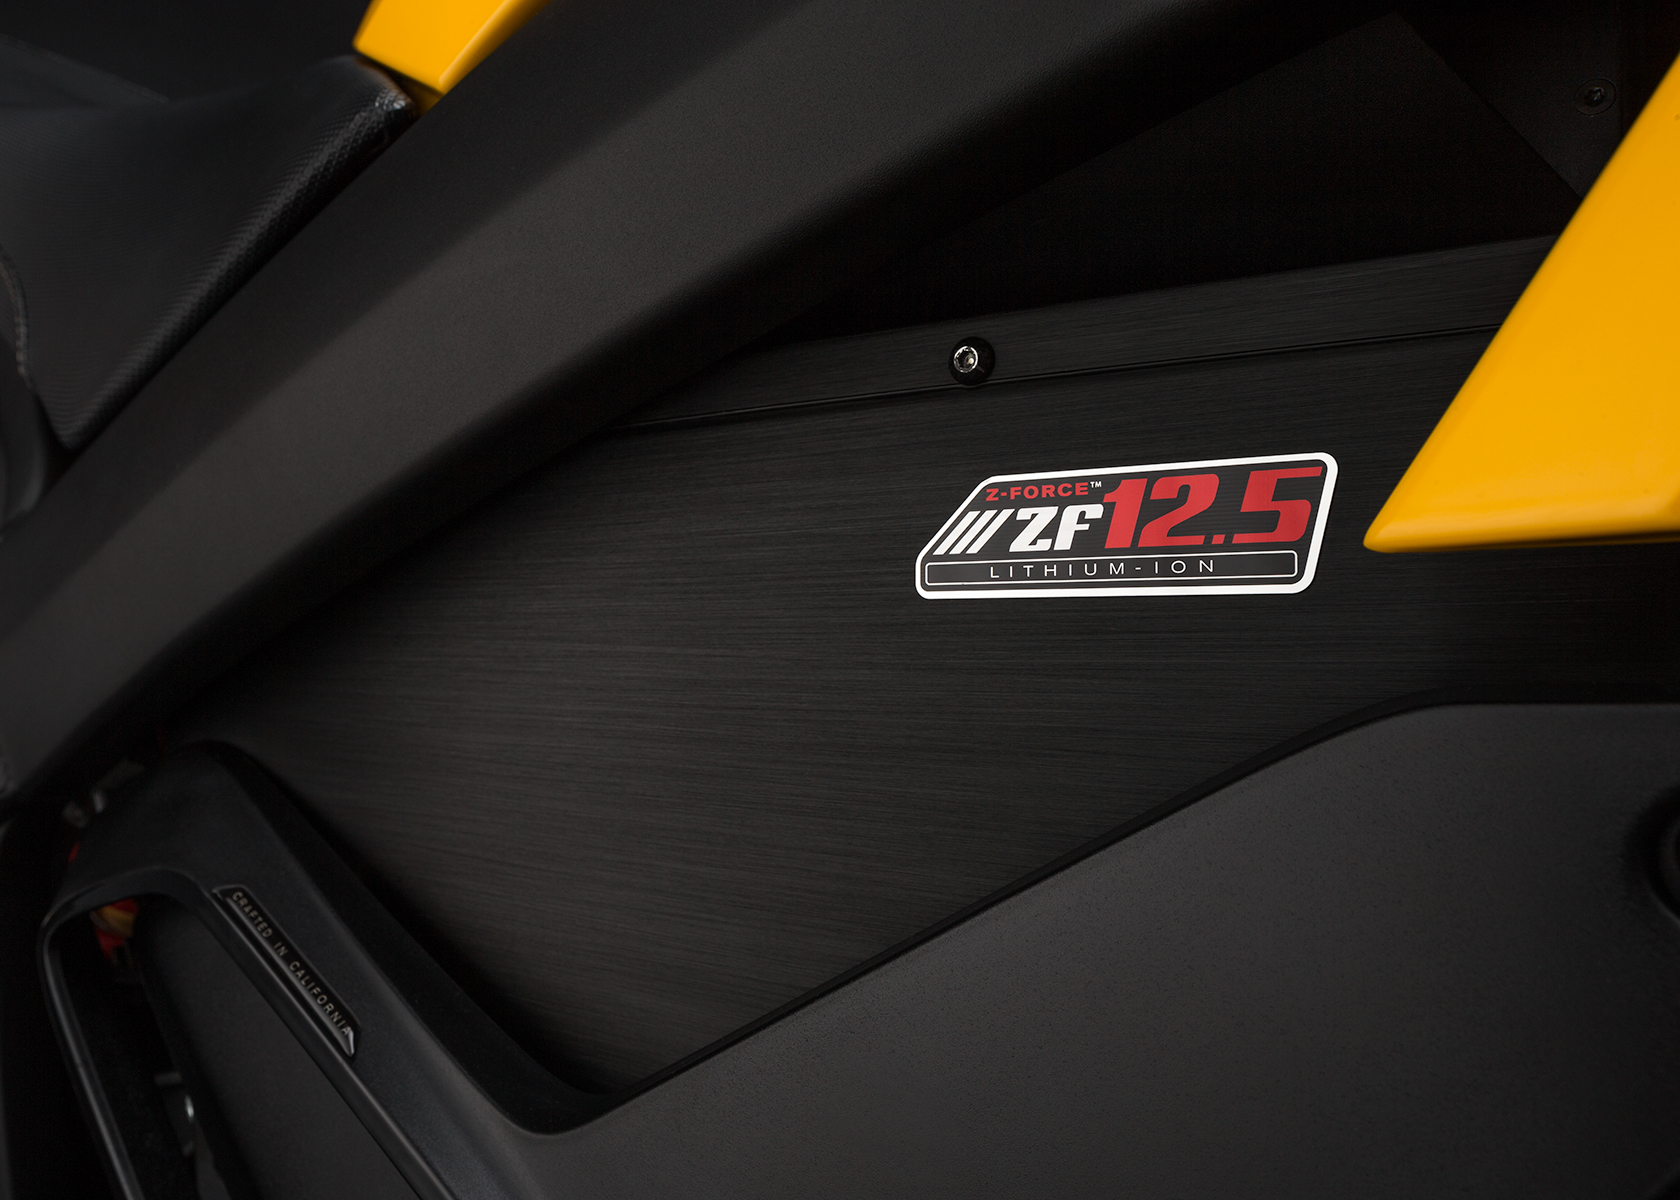 2015 Zero S Electric Motorcycle: Power Pack